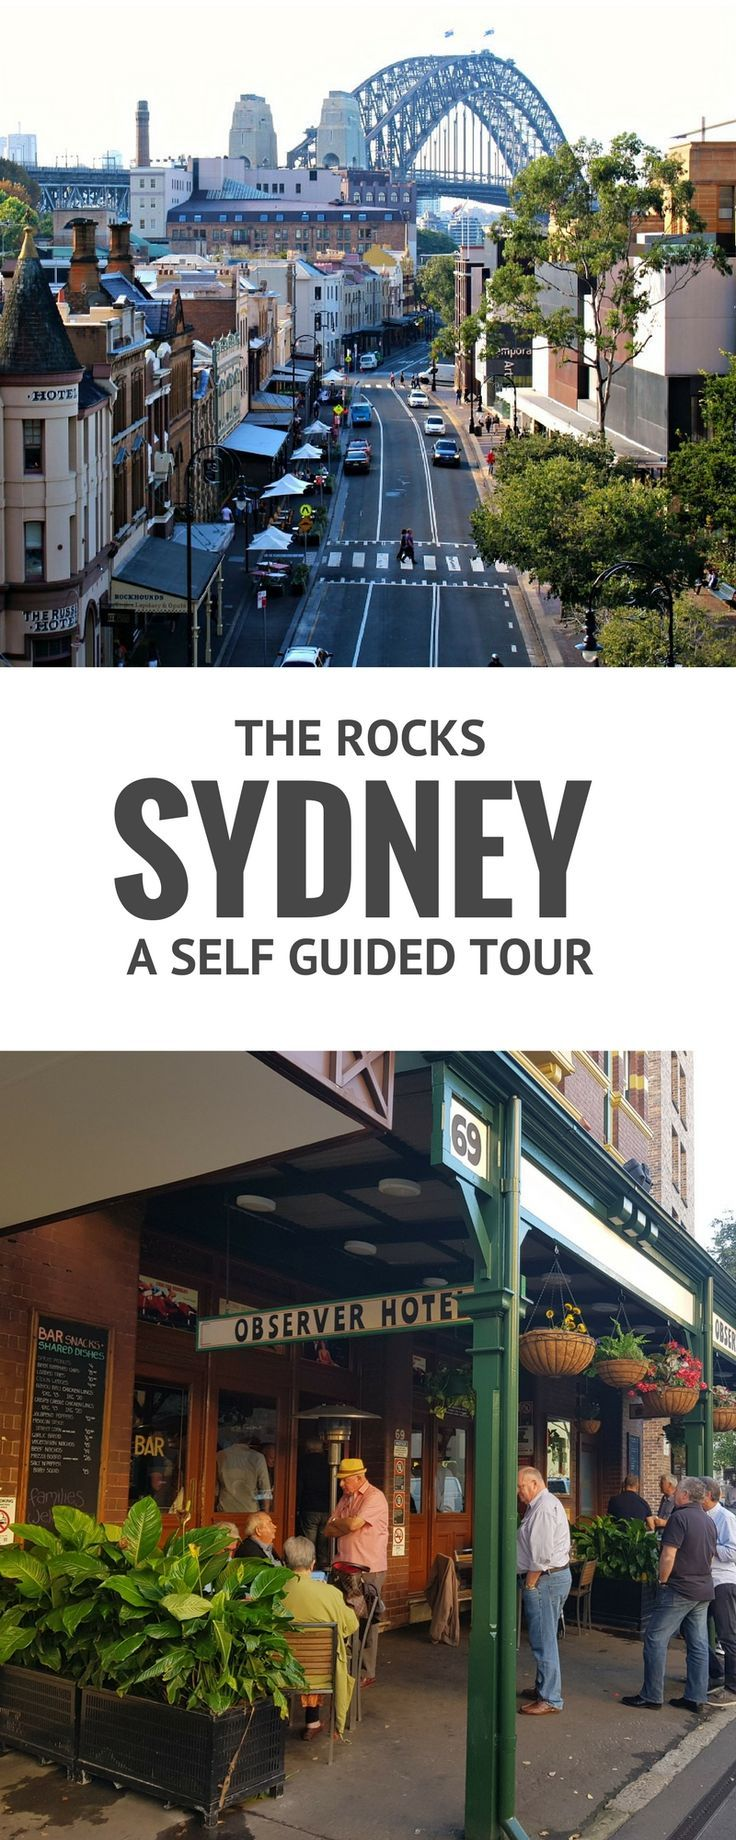 Take a 2 hour self guided tour of the Rocks in Sydney with this easy to follow guide.